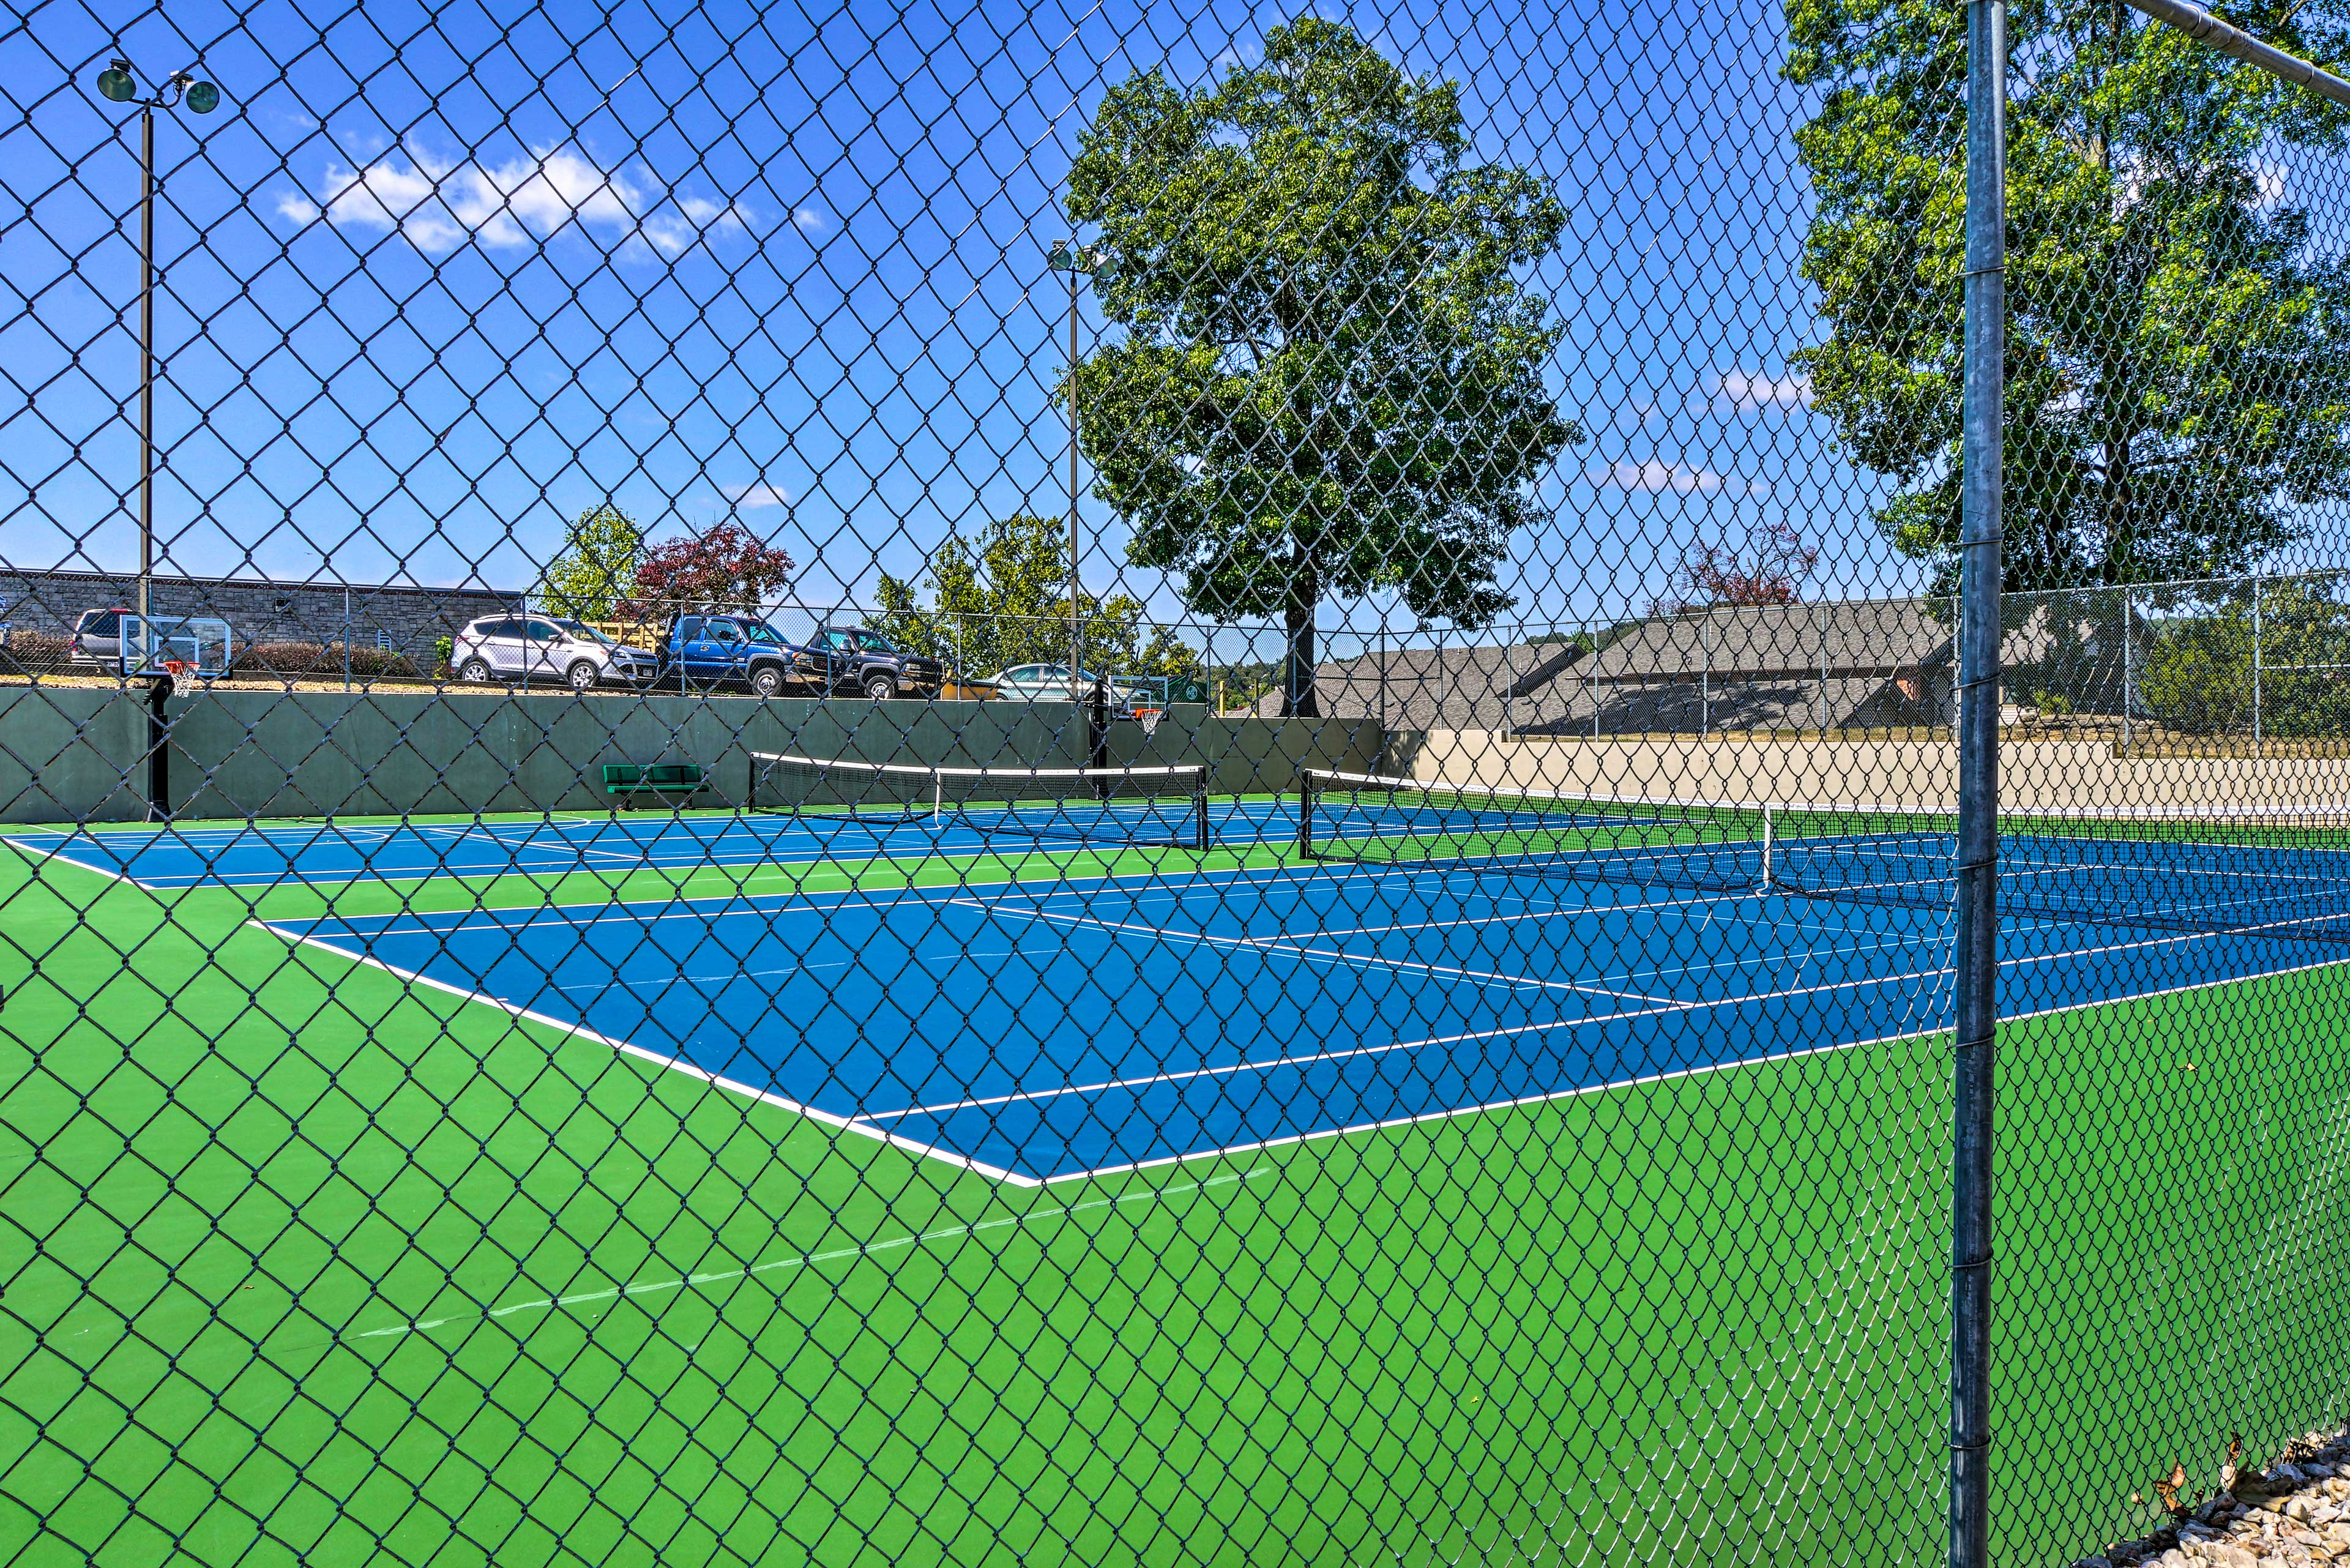 Get your blood pumping with a fast-paced game of tennis.